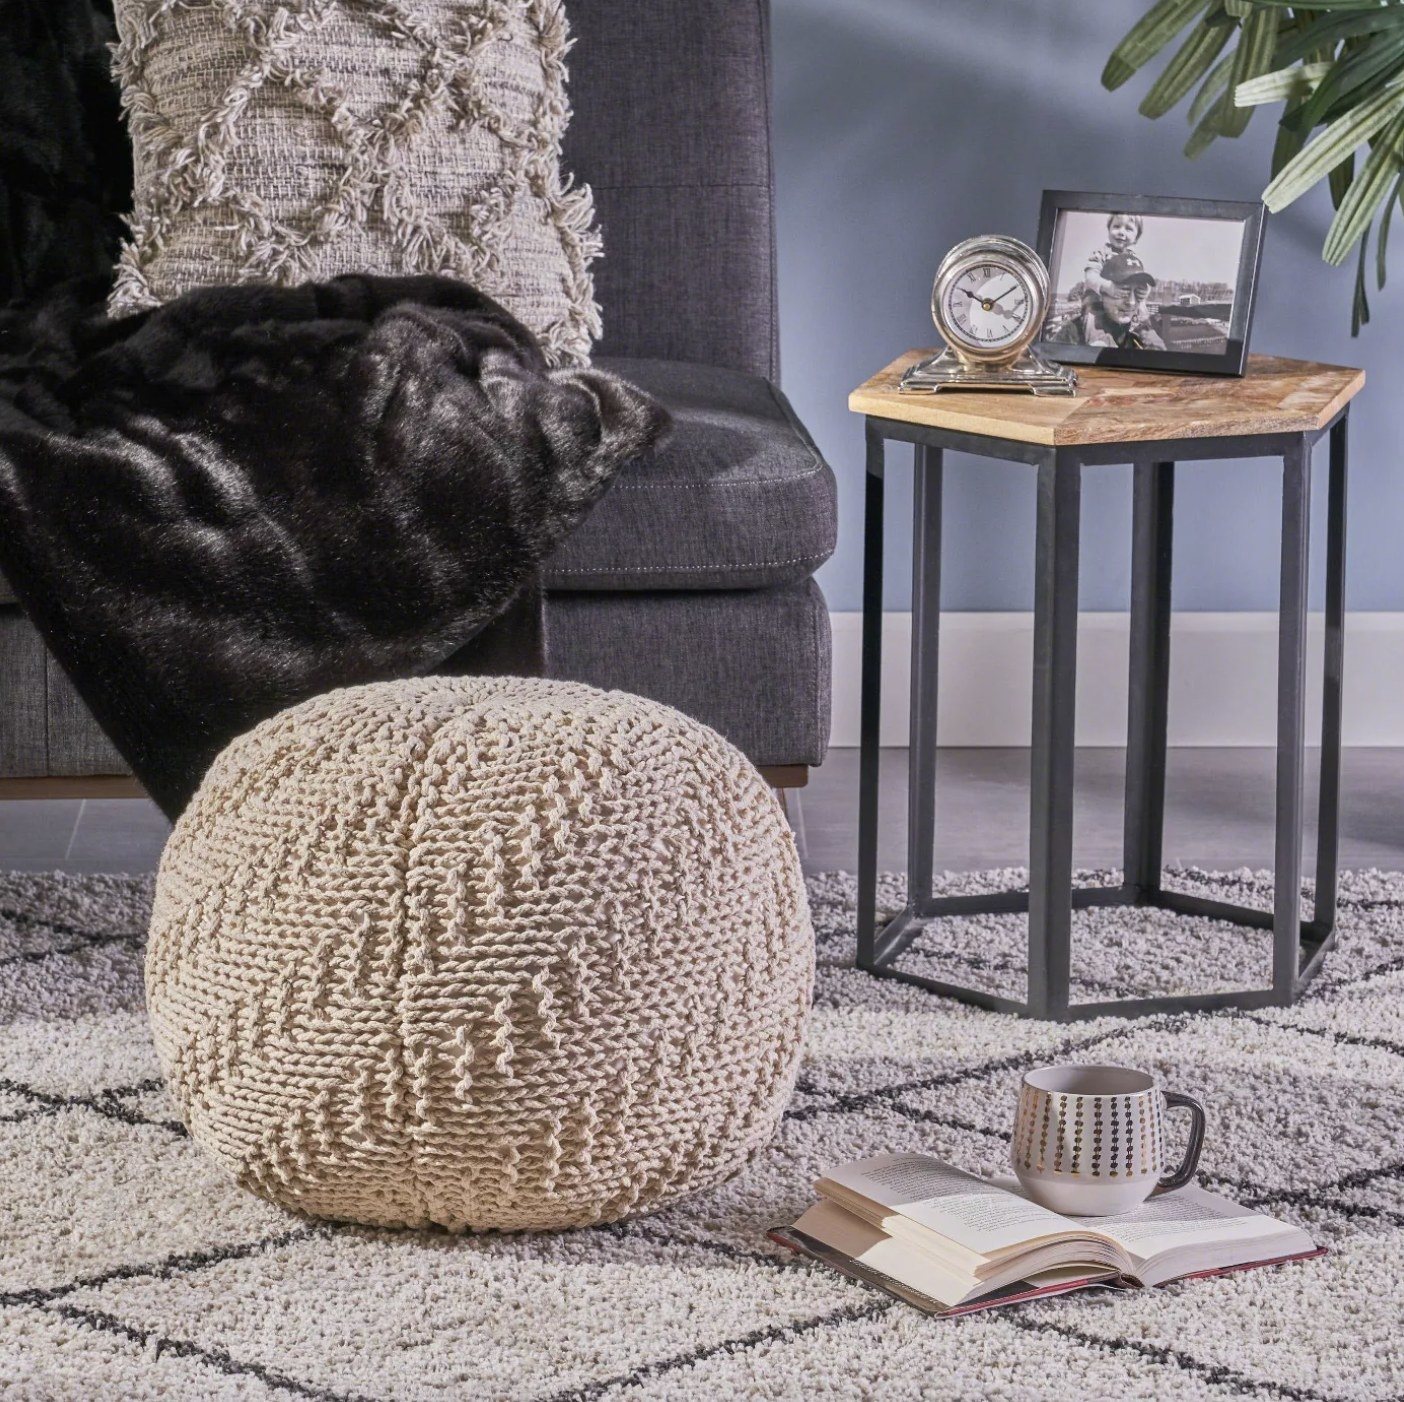 The cream knitted pouf